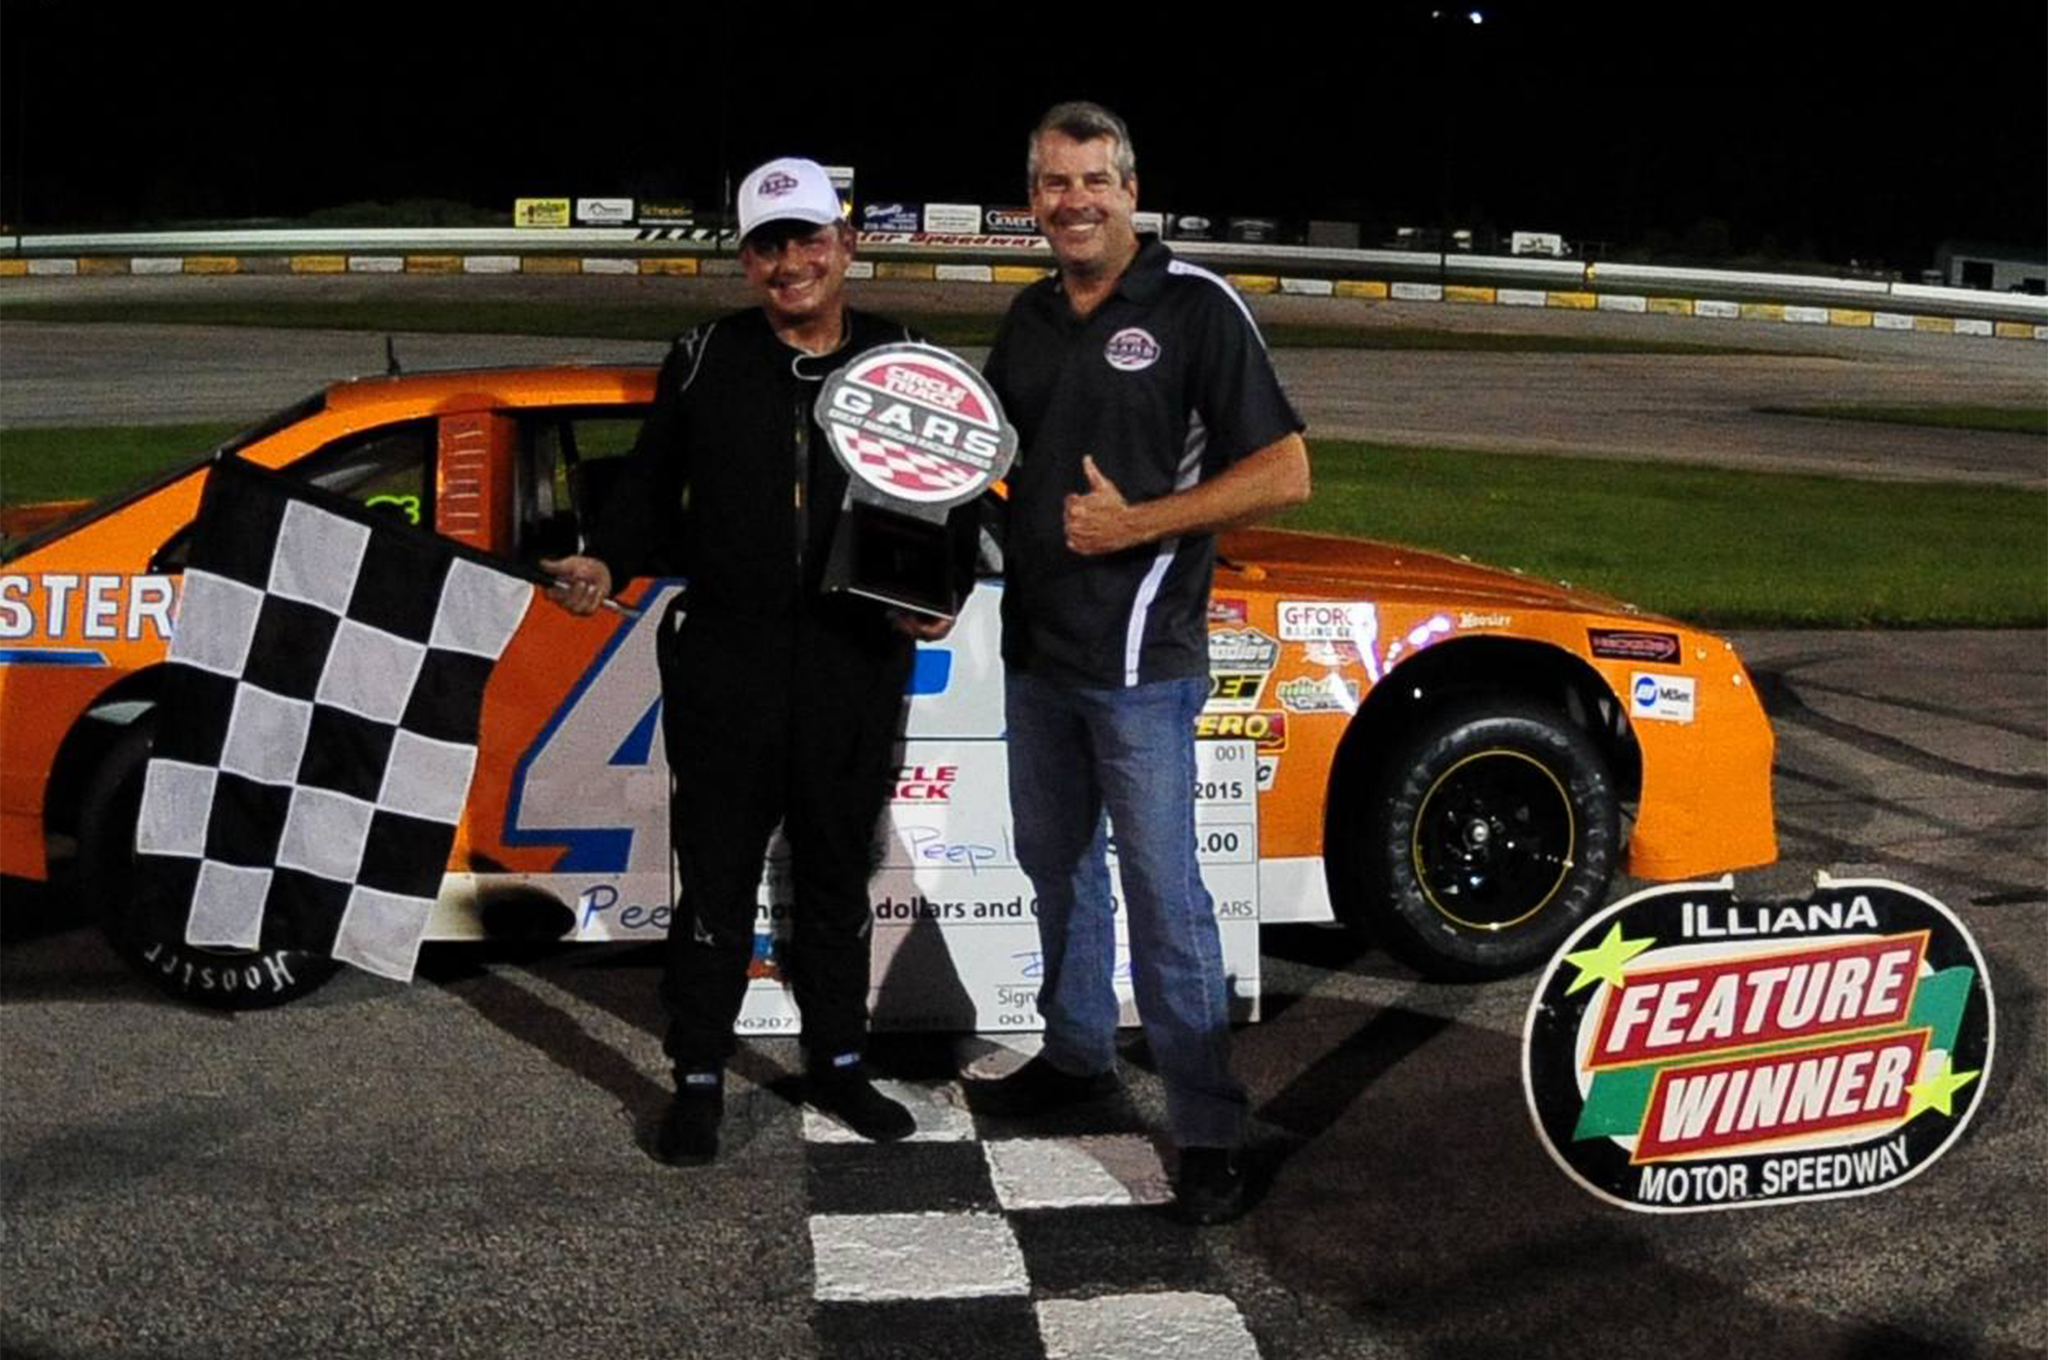 Curtiss Peeples and his team traveled 16 hours one way to compete in the Great American Racing Series event at Illiana Motor Speedway on Saturday, June 20.  The trip paid off with his first G.A.R.S win and a $5,000 pay day.